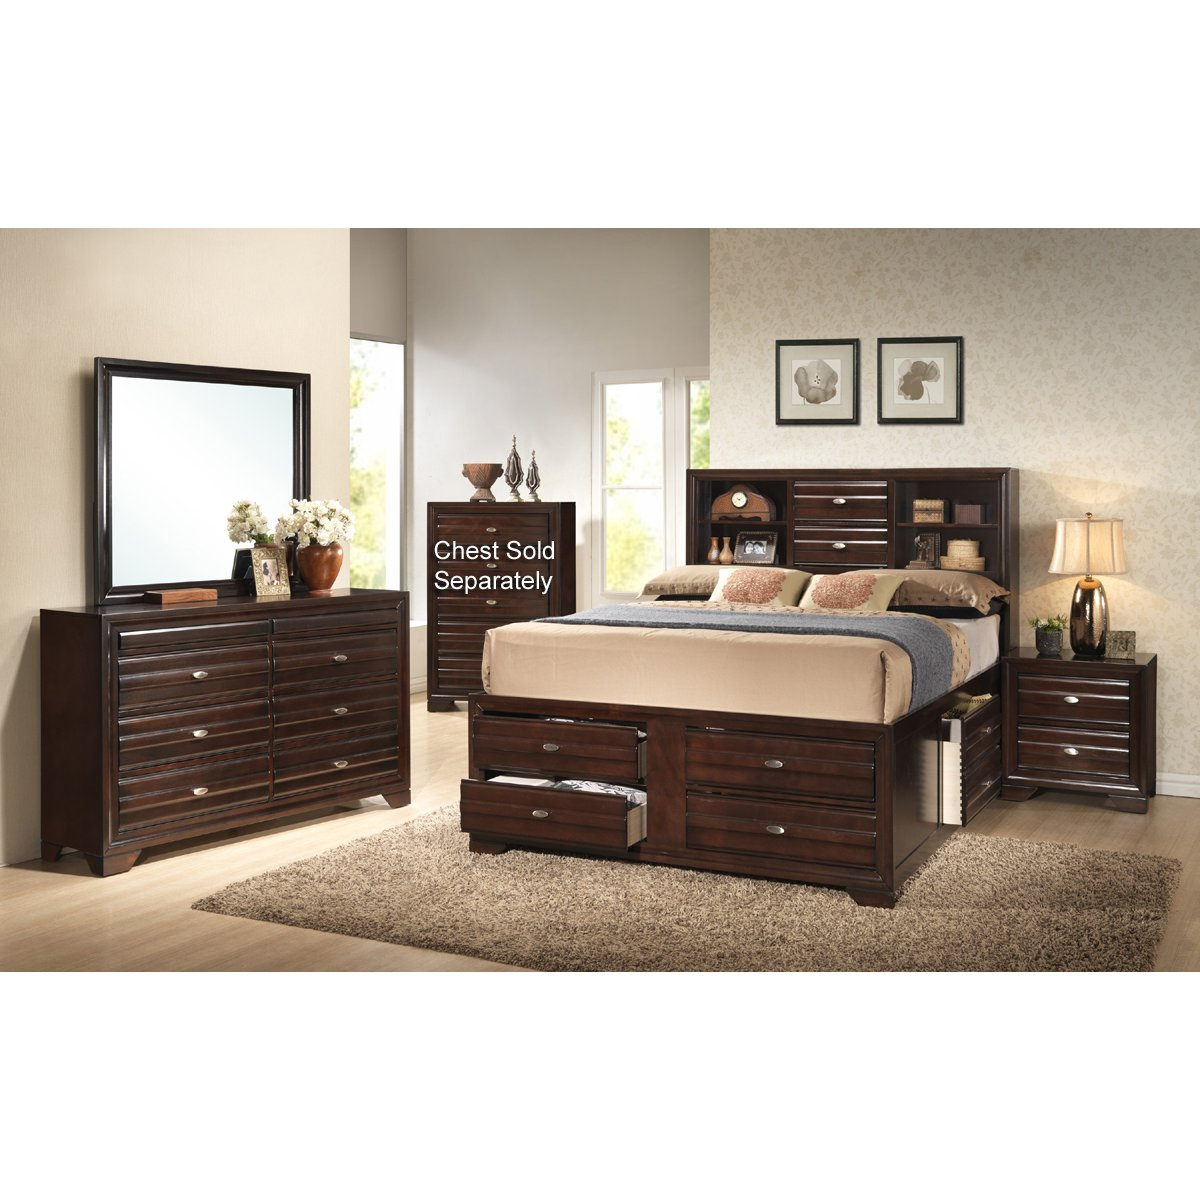 Stella 7 piece queen bedroom set rcwilley image1 for Bedroom furniture queen